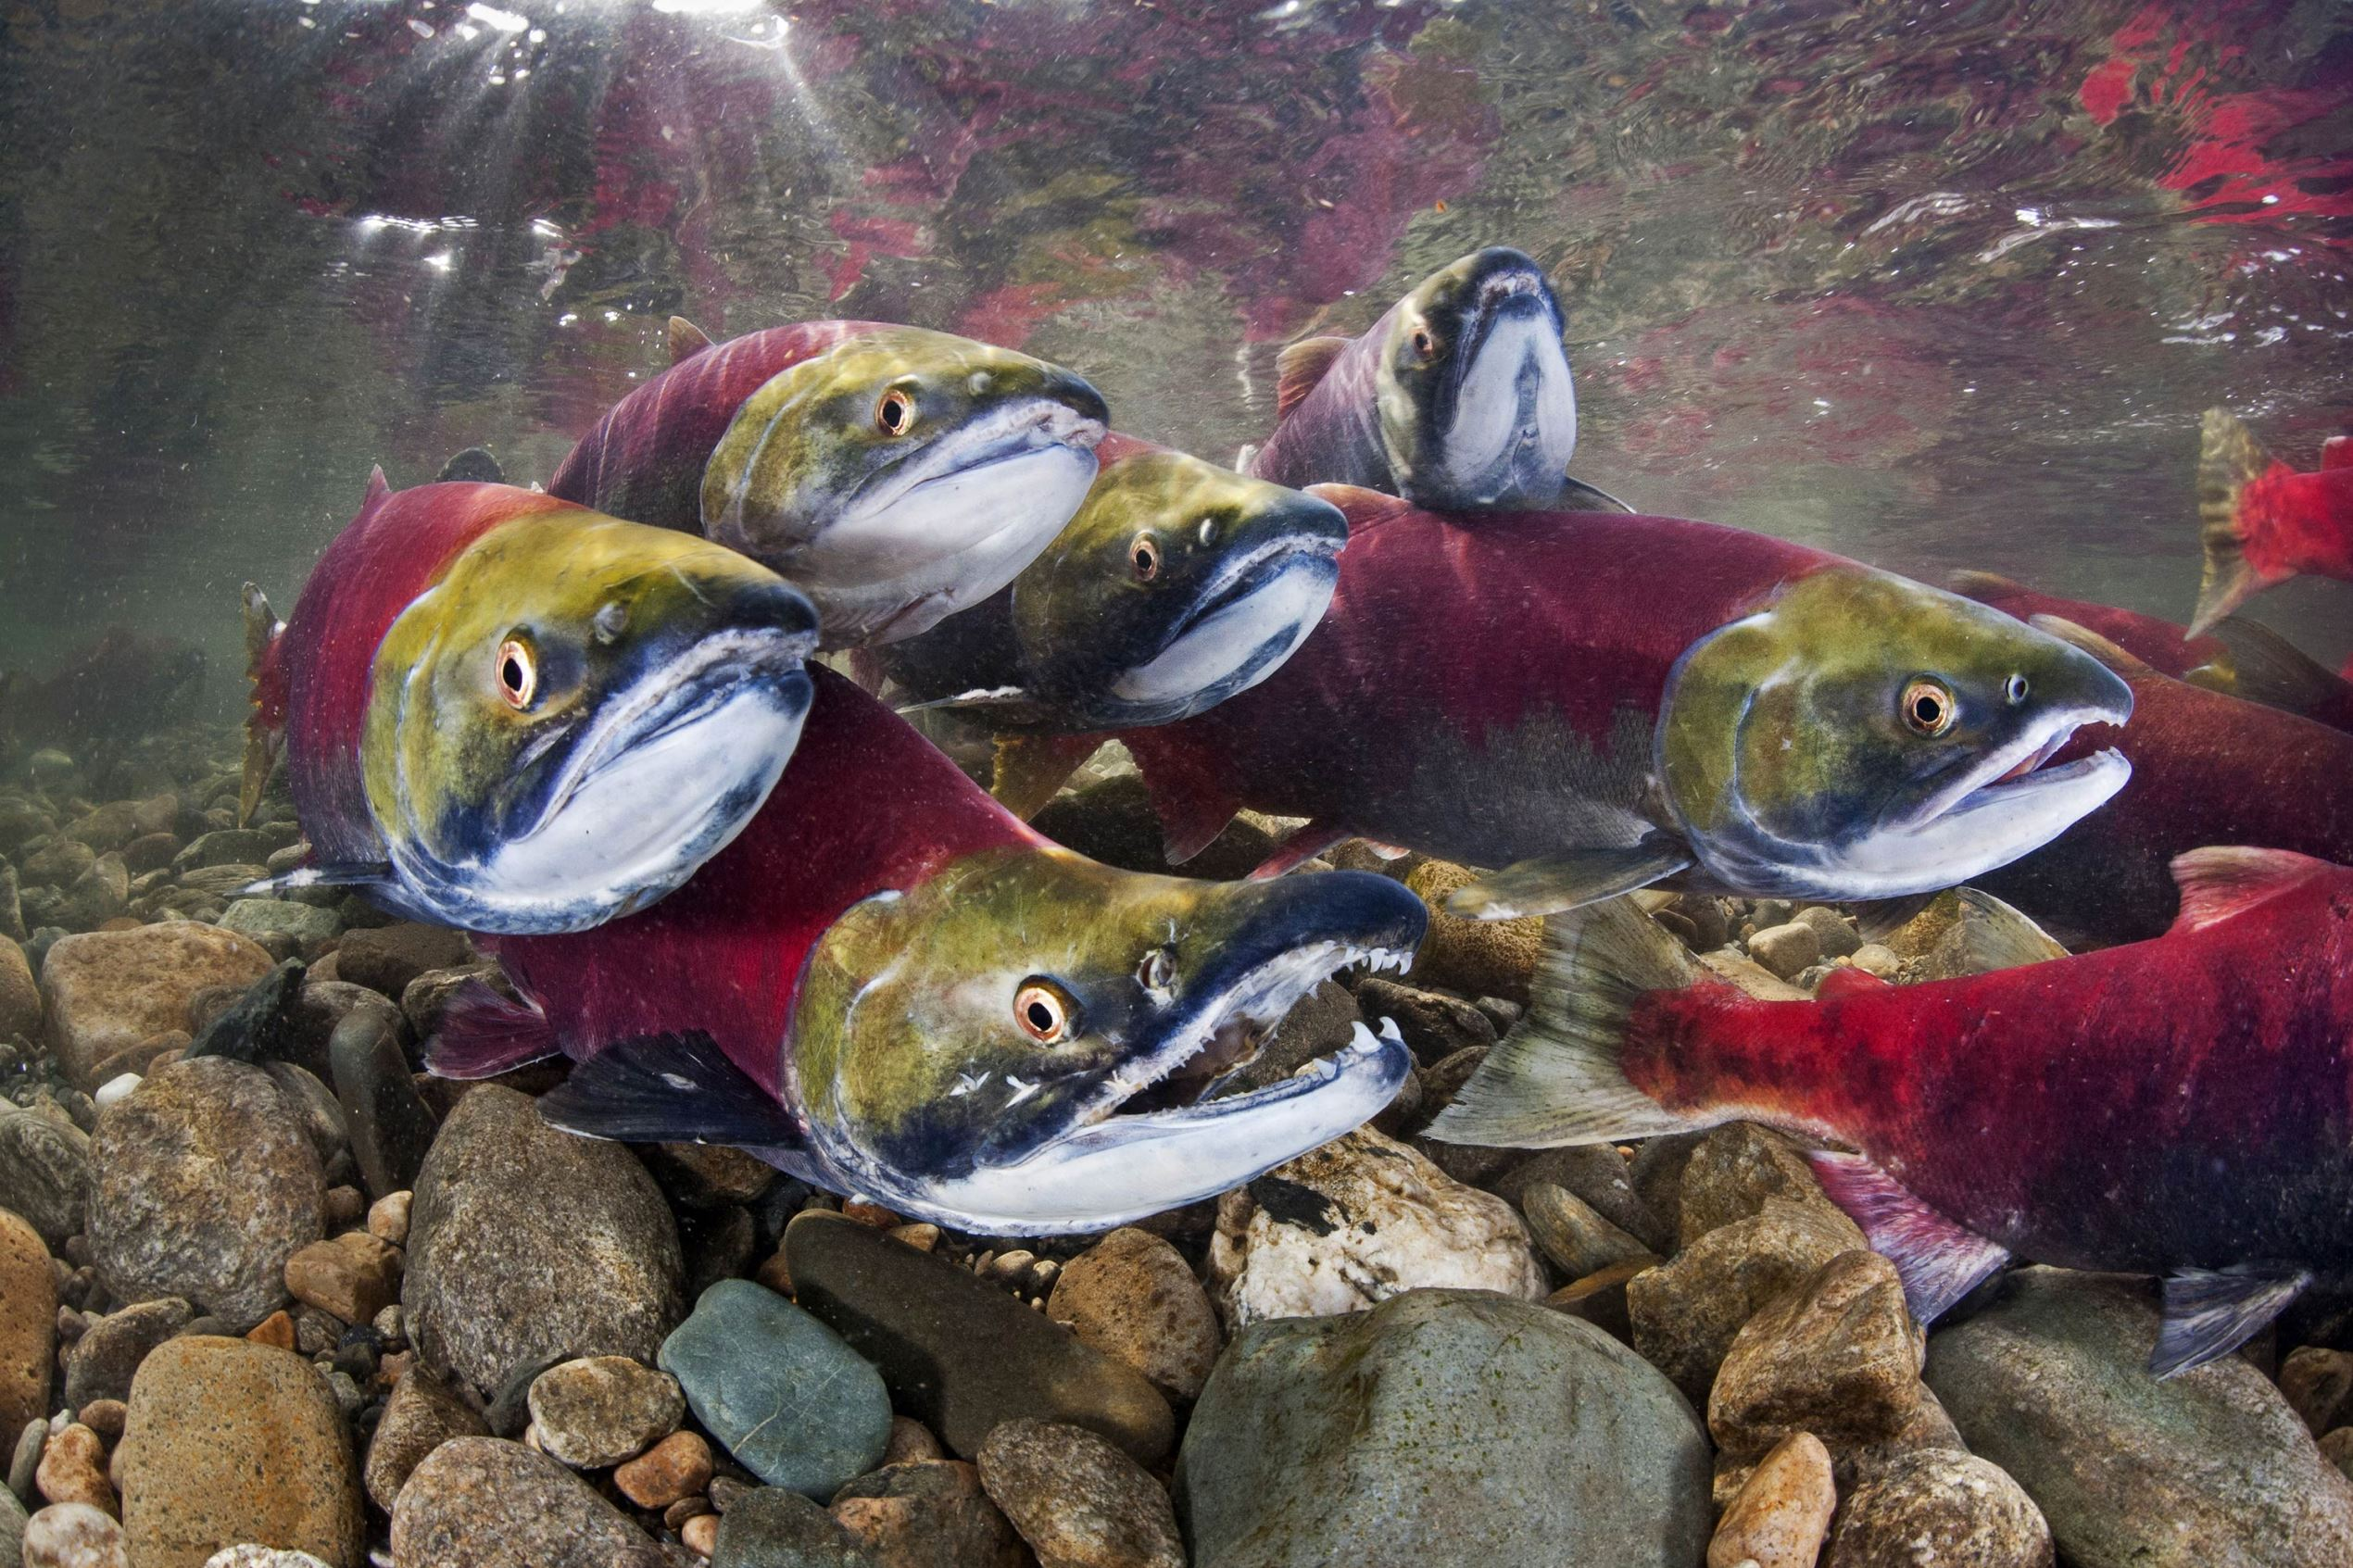 Sockeye salmon battle their way upstream as part of their annual migration.